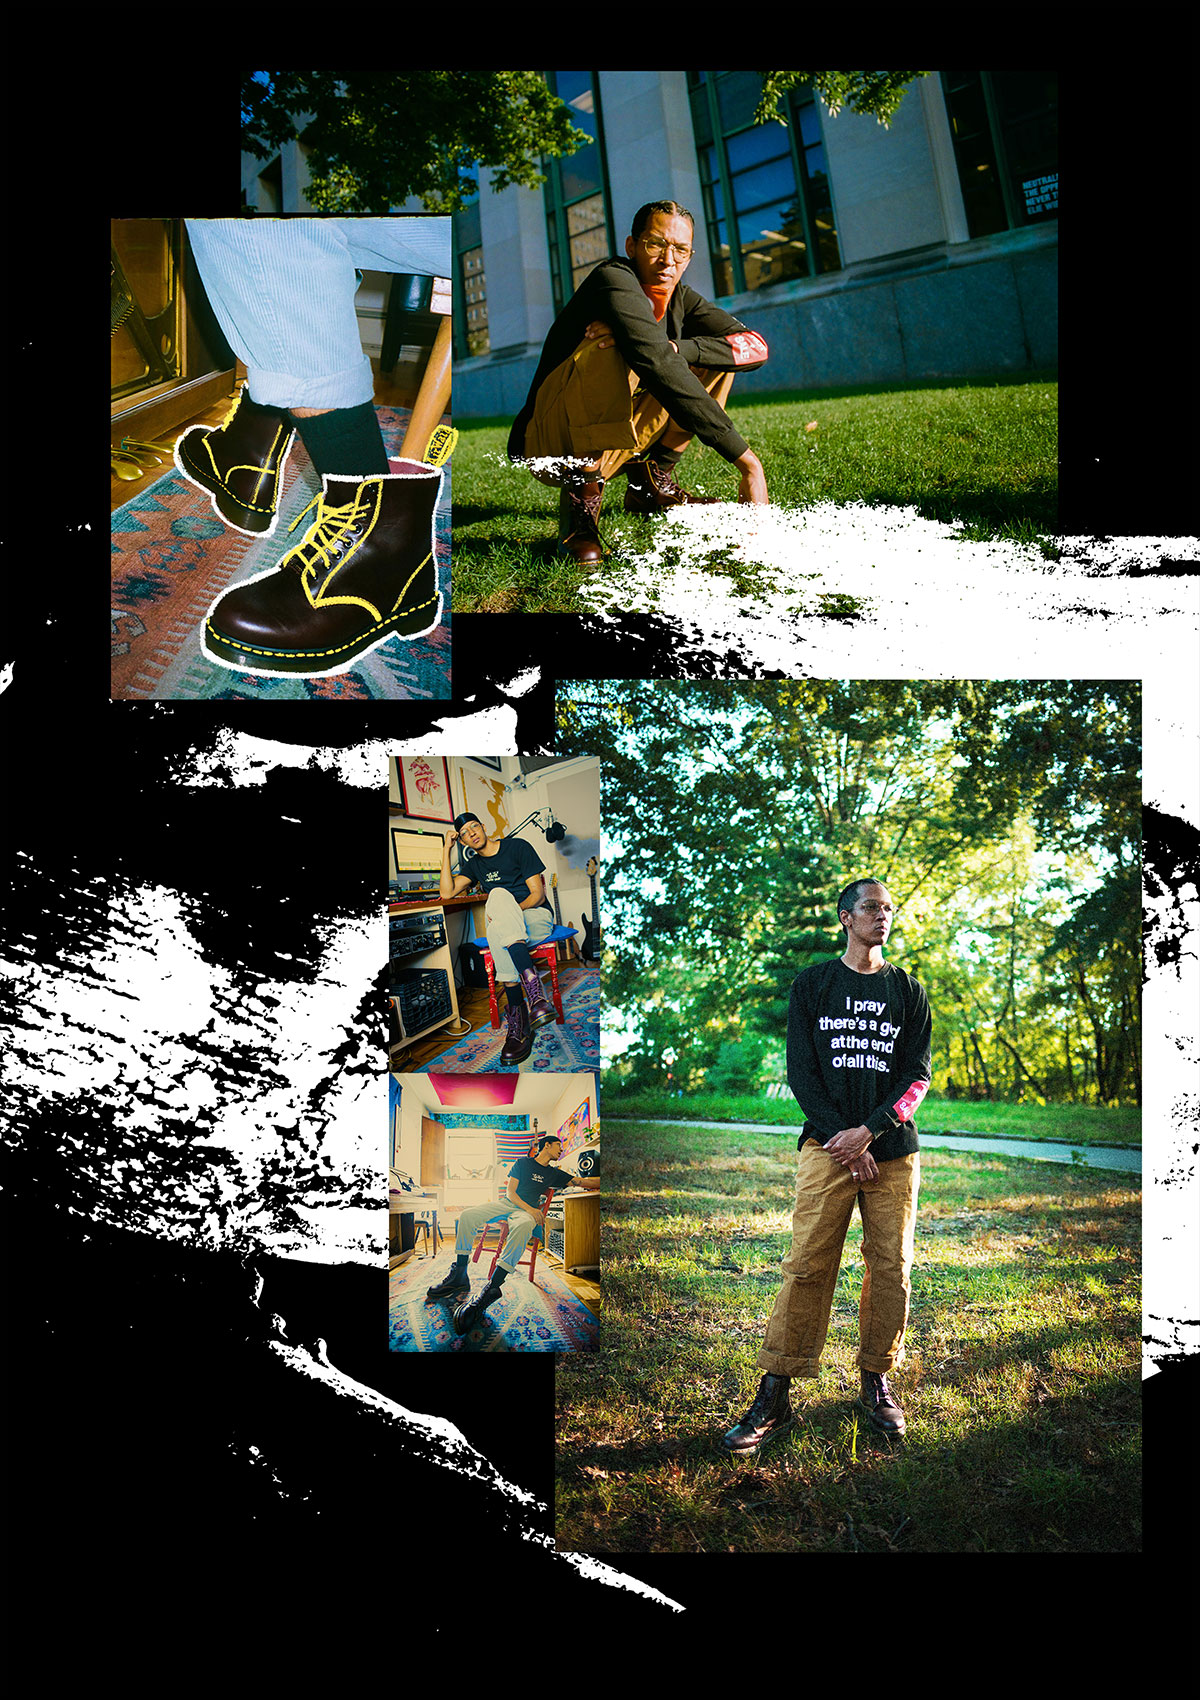 A collage of images showing him squat in the grass, showing off his Docs, posing in a workspace, candid shot in the workspace, and standing in the park with arms crossed low in front.